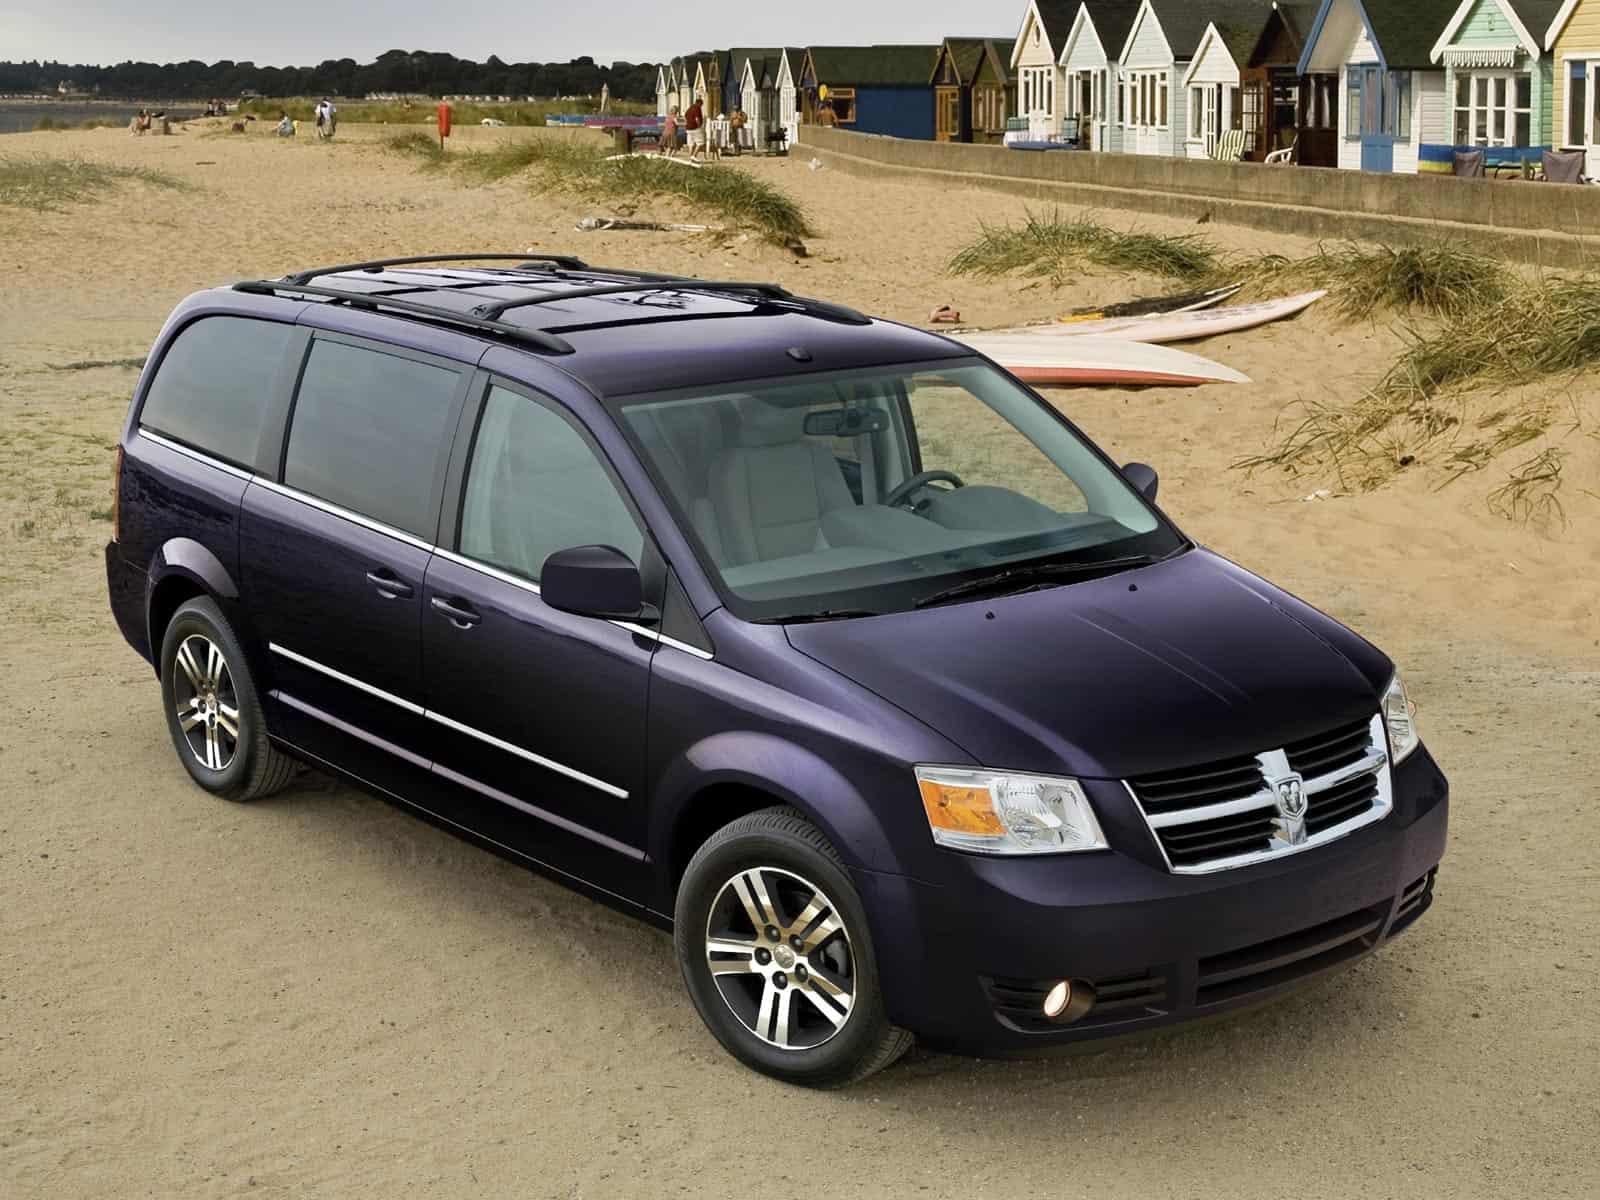 Dodge Grand Caravans are reliable